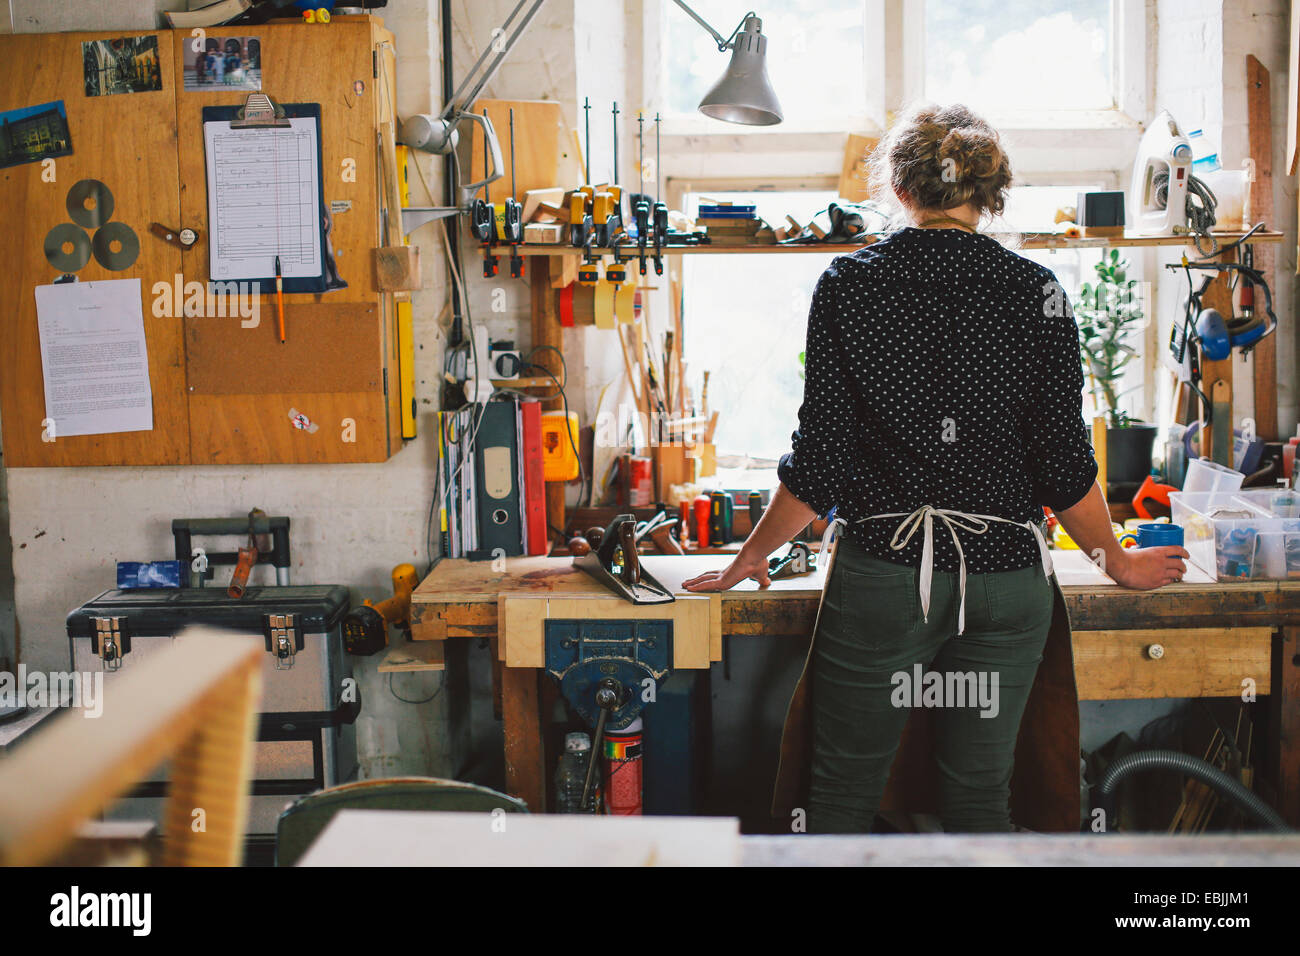 Rear view of young craftswoman at workbench in pipe organ workshop - Stock Image